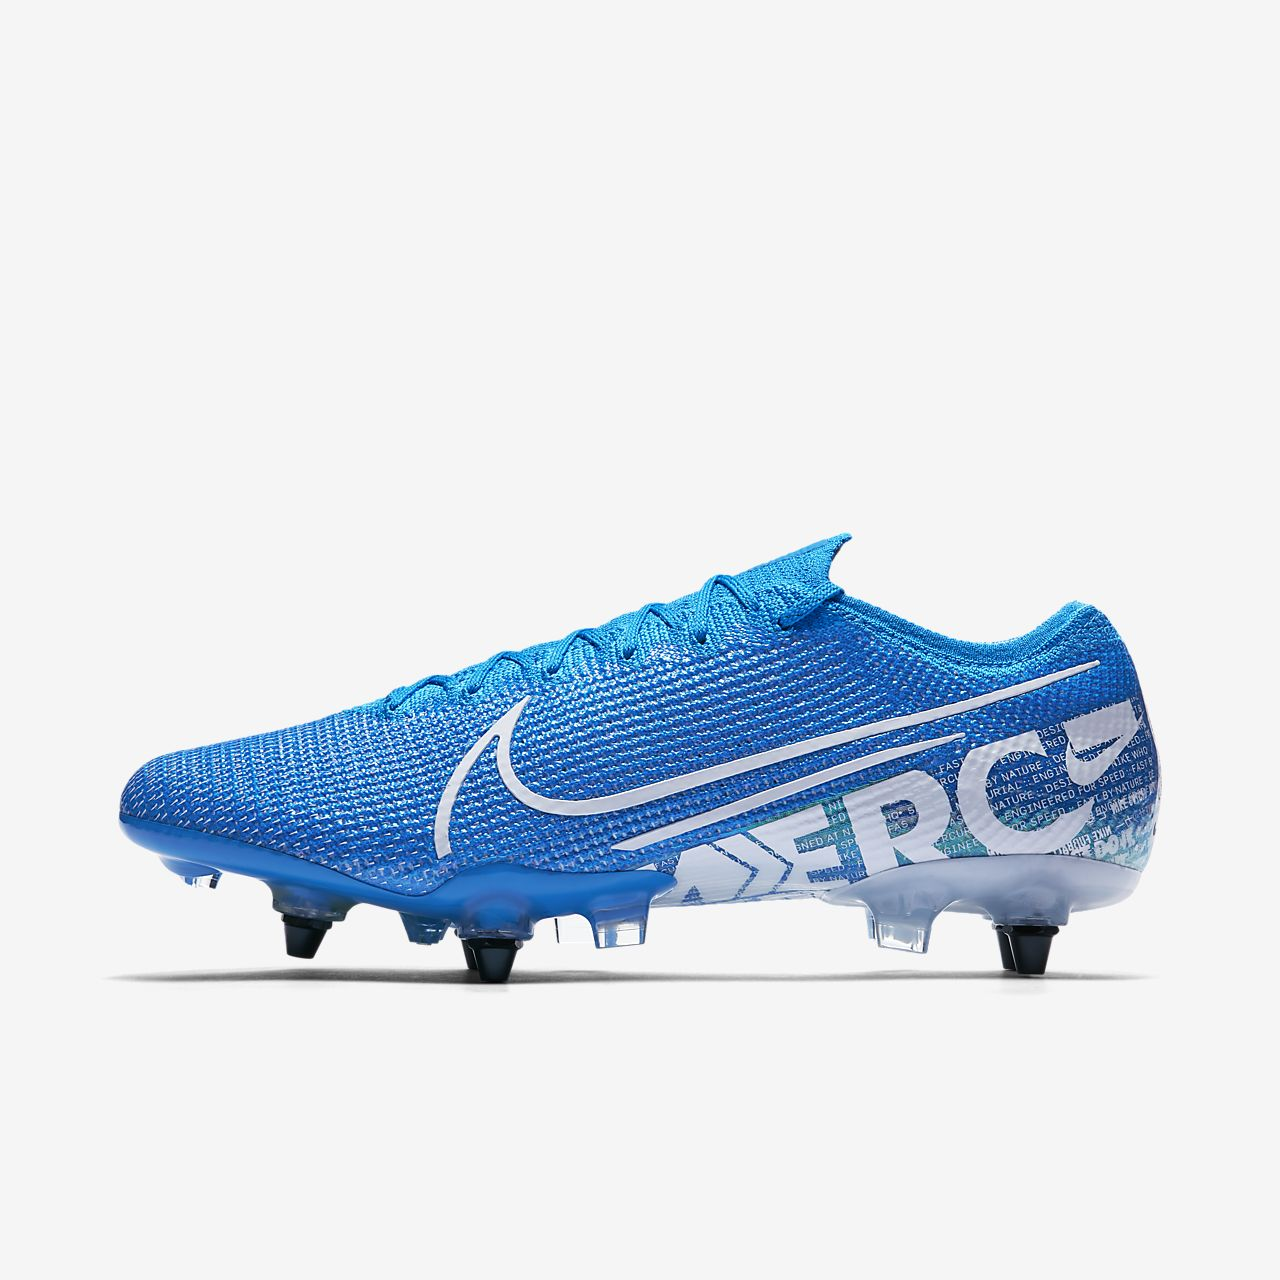 Chuteiras de futebol para terreno mole Nike Mercurial Vapor 13 Elite SG-PRO Anti-Clog Traction